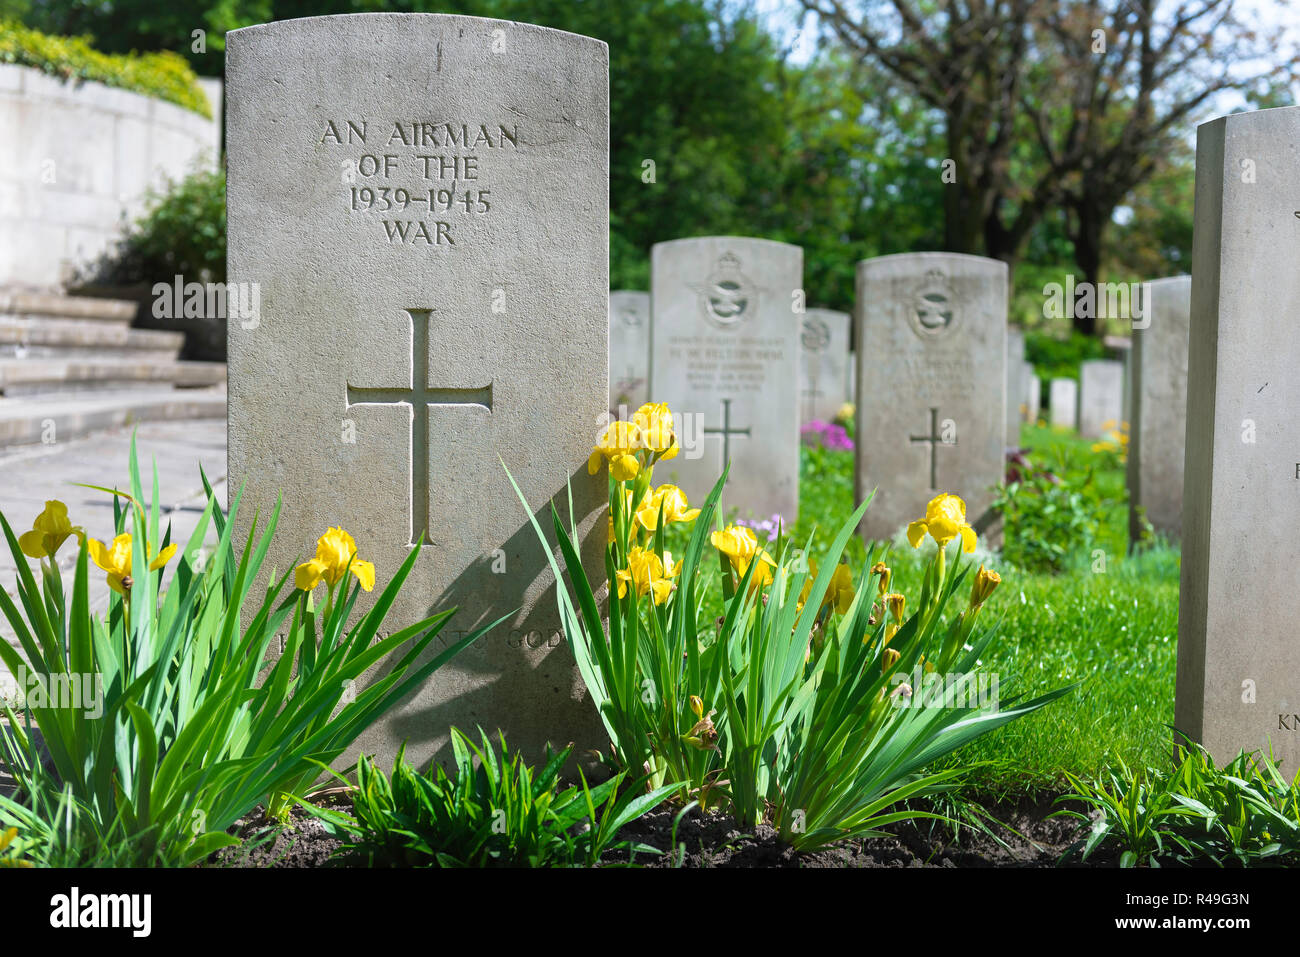 British war grave, view of a well tended headstone of an unknown Allied airman who died in WW2, Poznan (Posen) Garrison Cemetery, Poland. Stock Photo